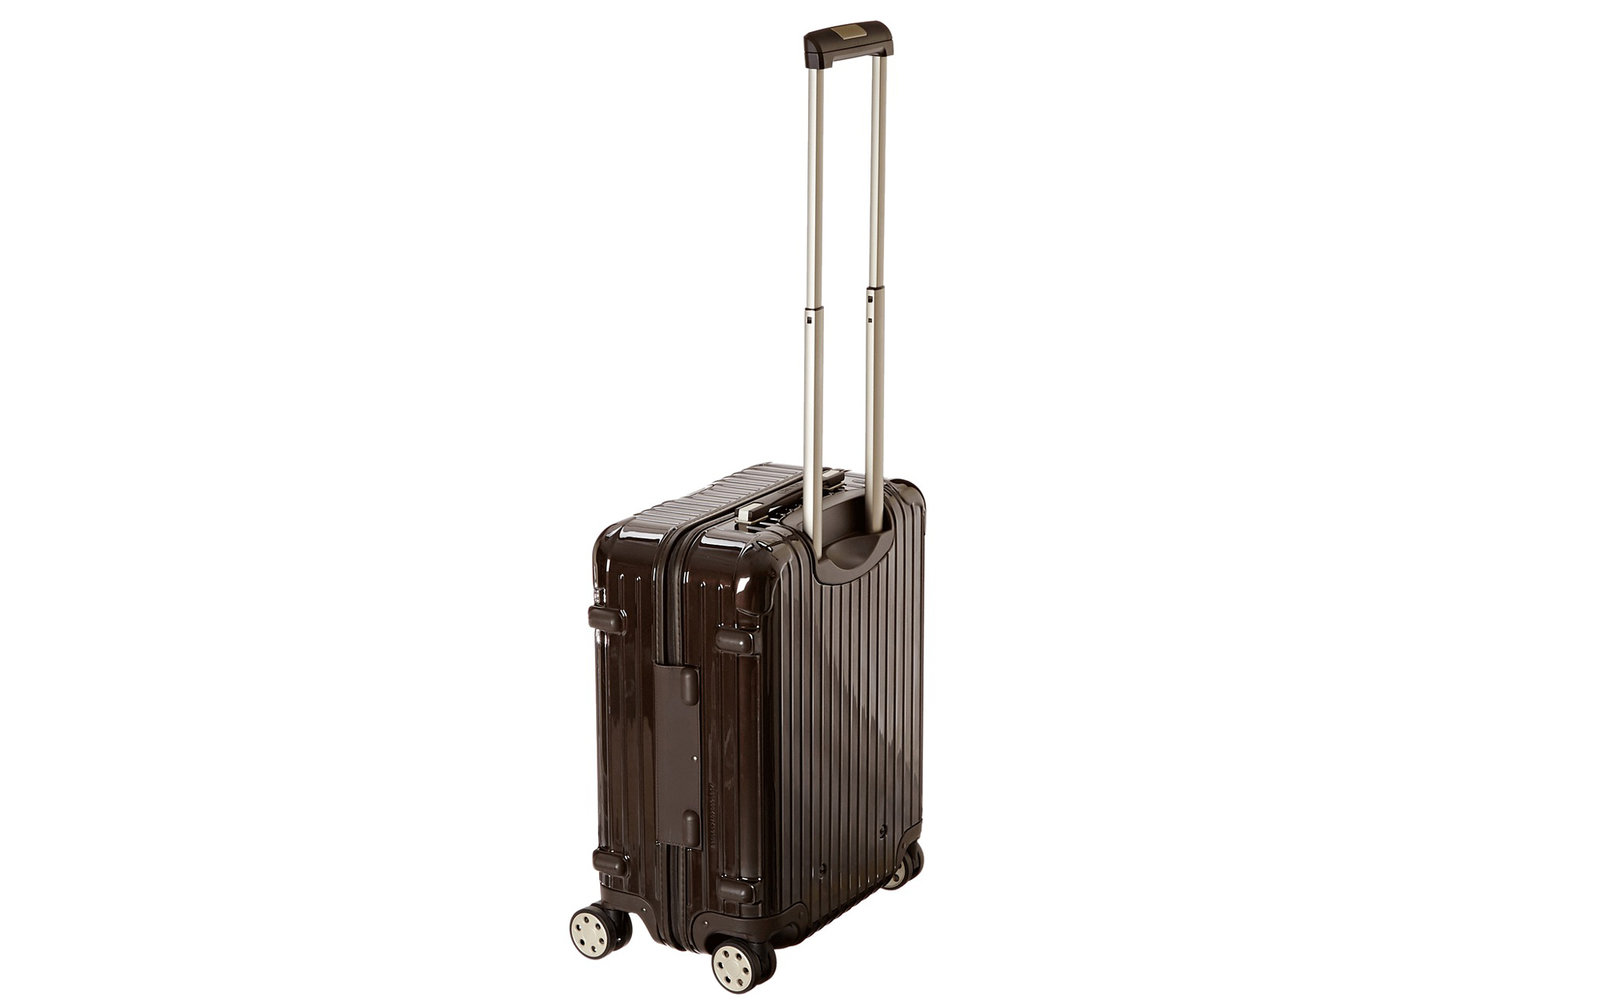 Rimowa lightweight overnight business case